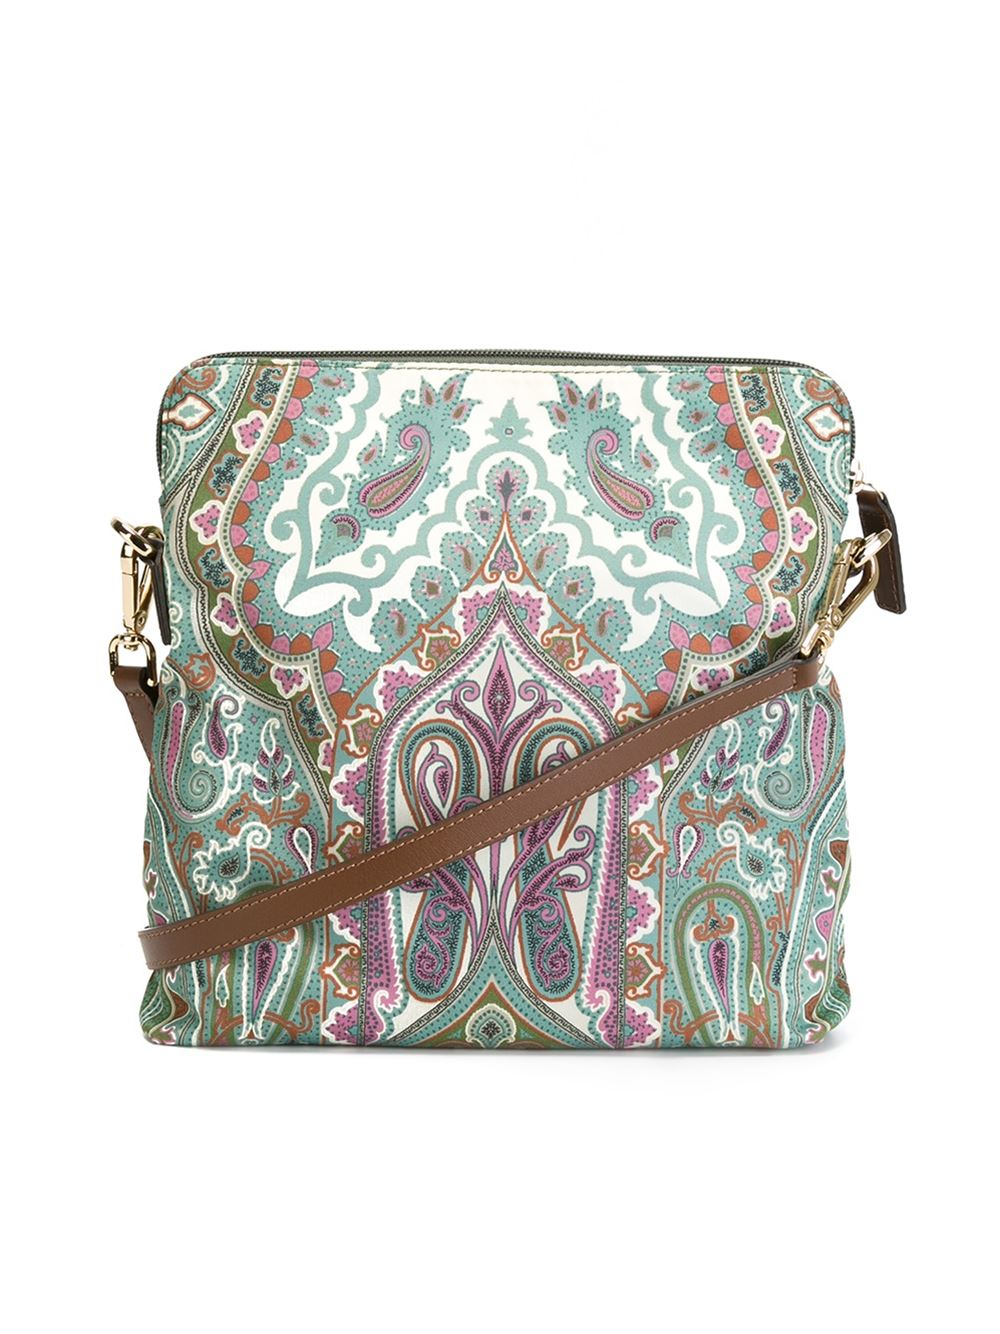 Etro Kissen Etro Floral Paisley Print Crossbody Bag In Green - Lyst